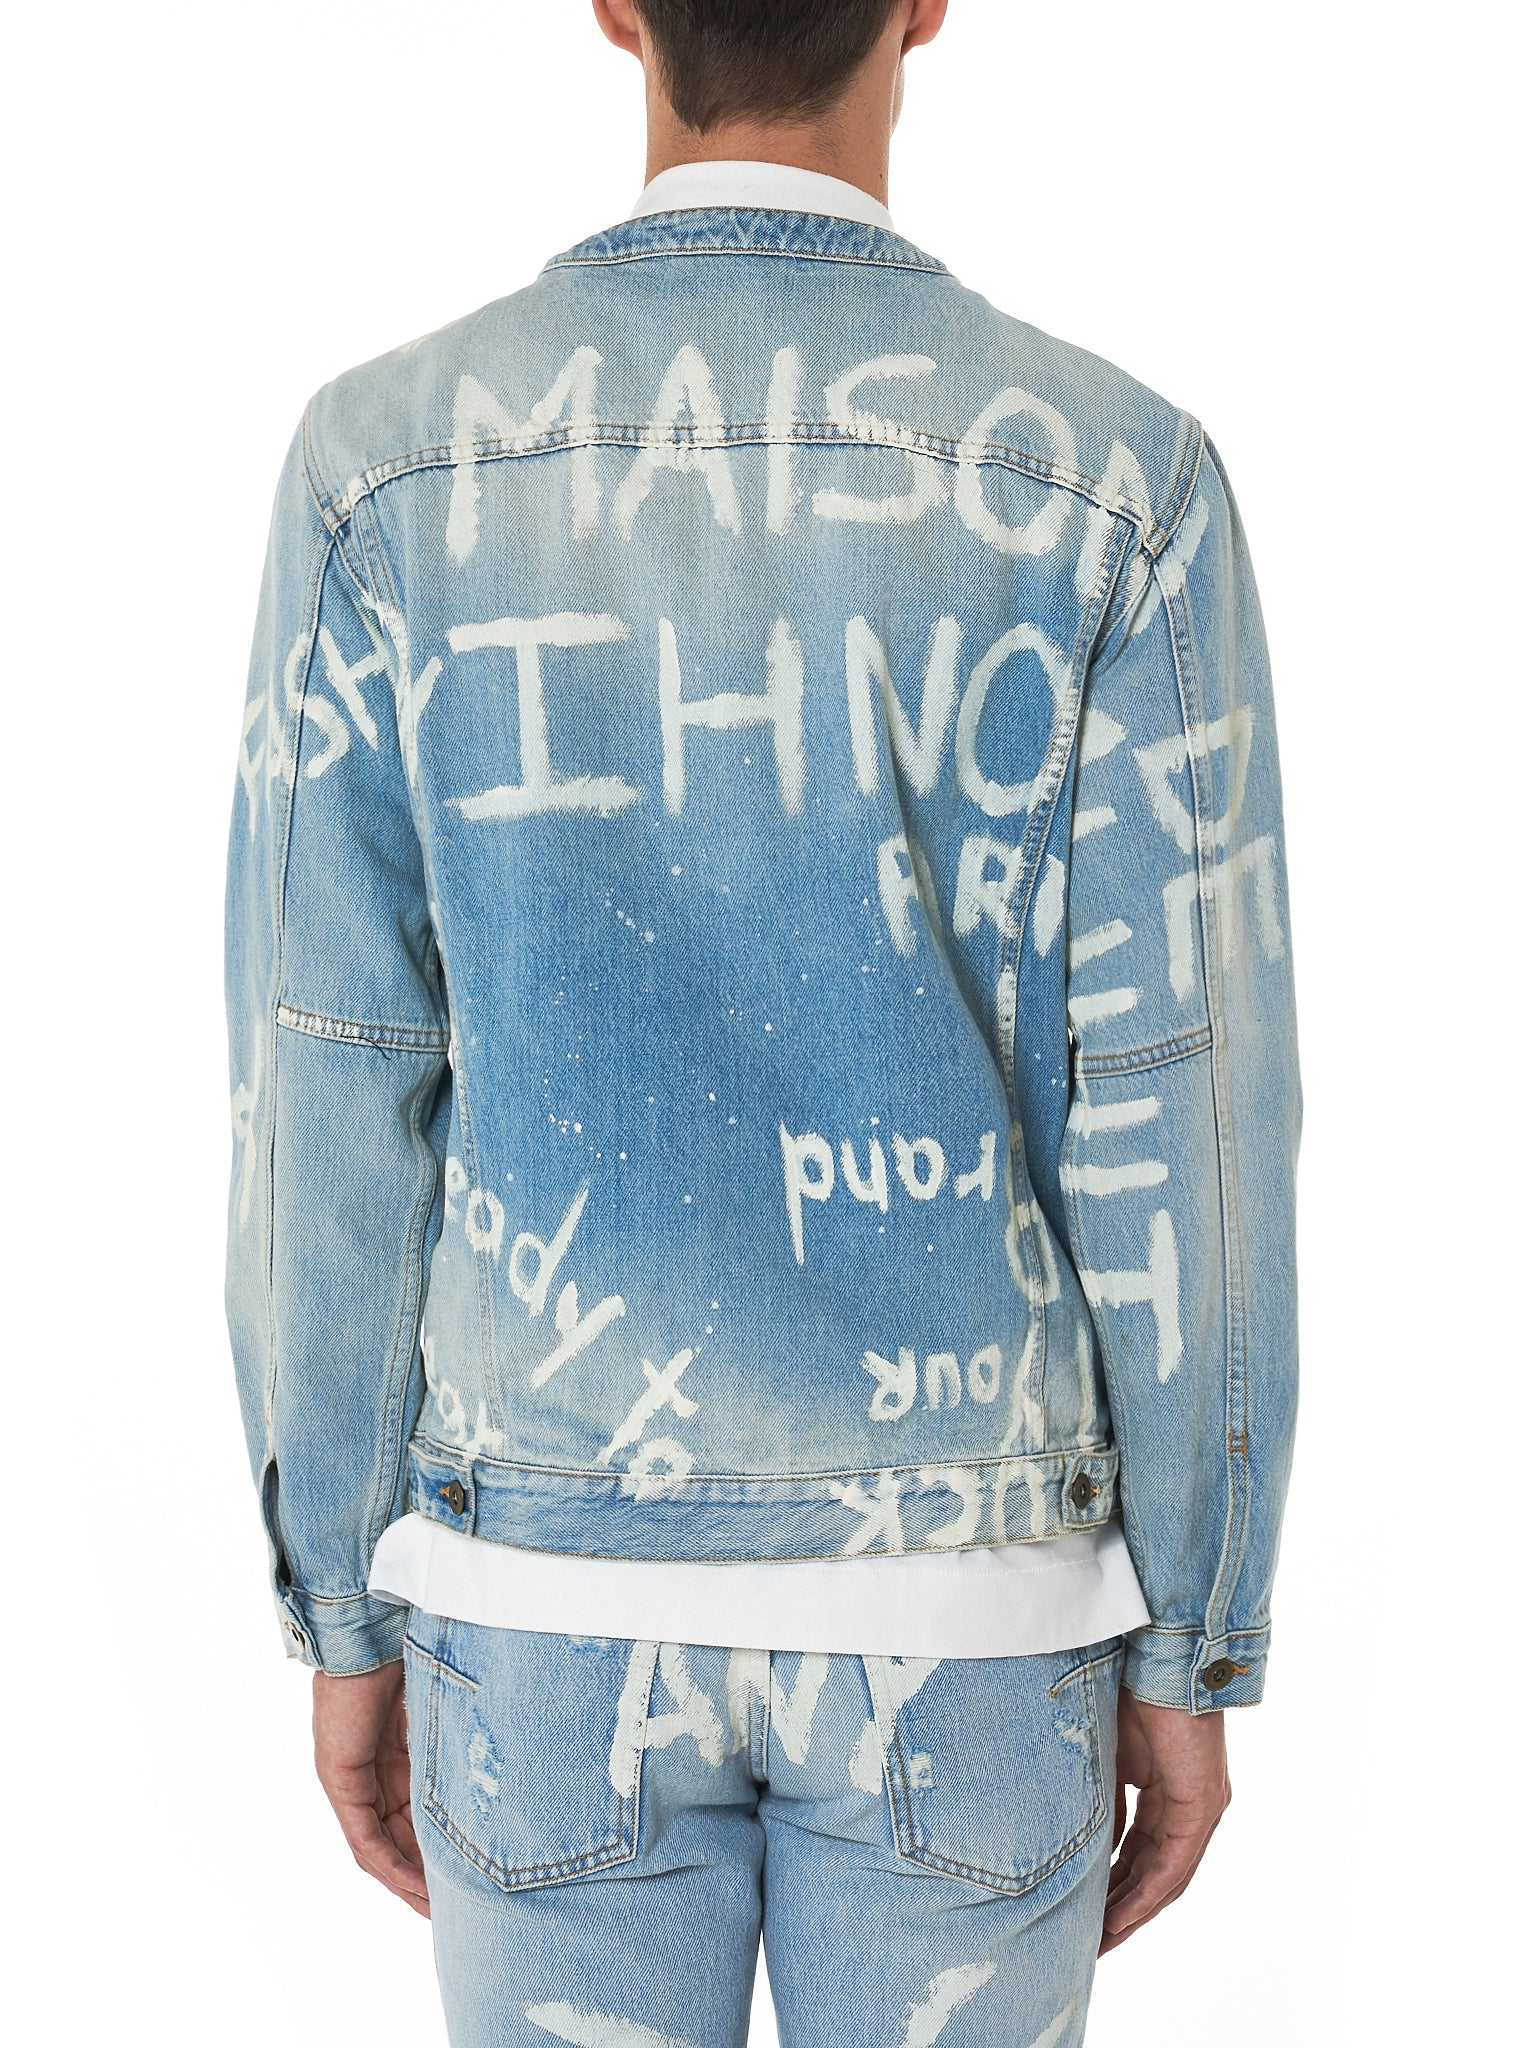 IH NOM UH NIT Denim Jacket - Hlorenzo Back